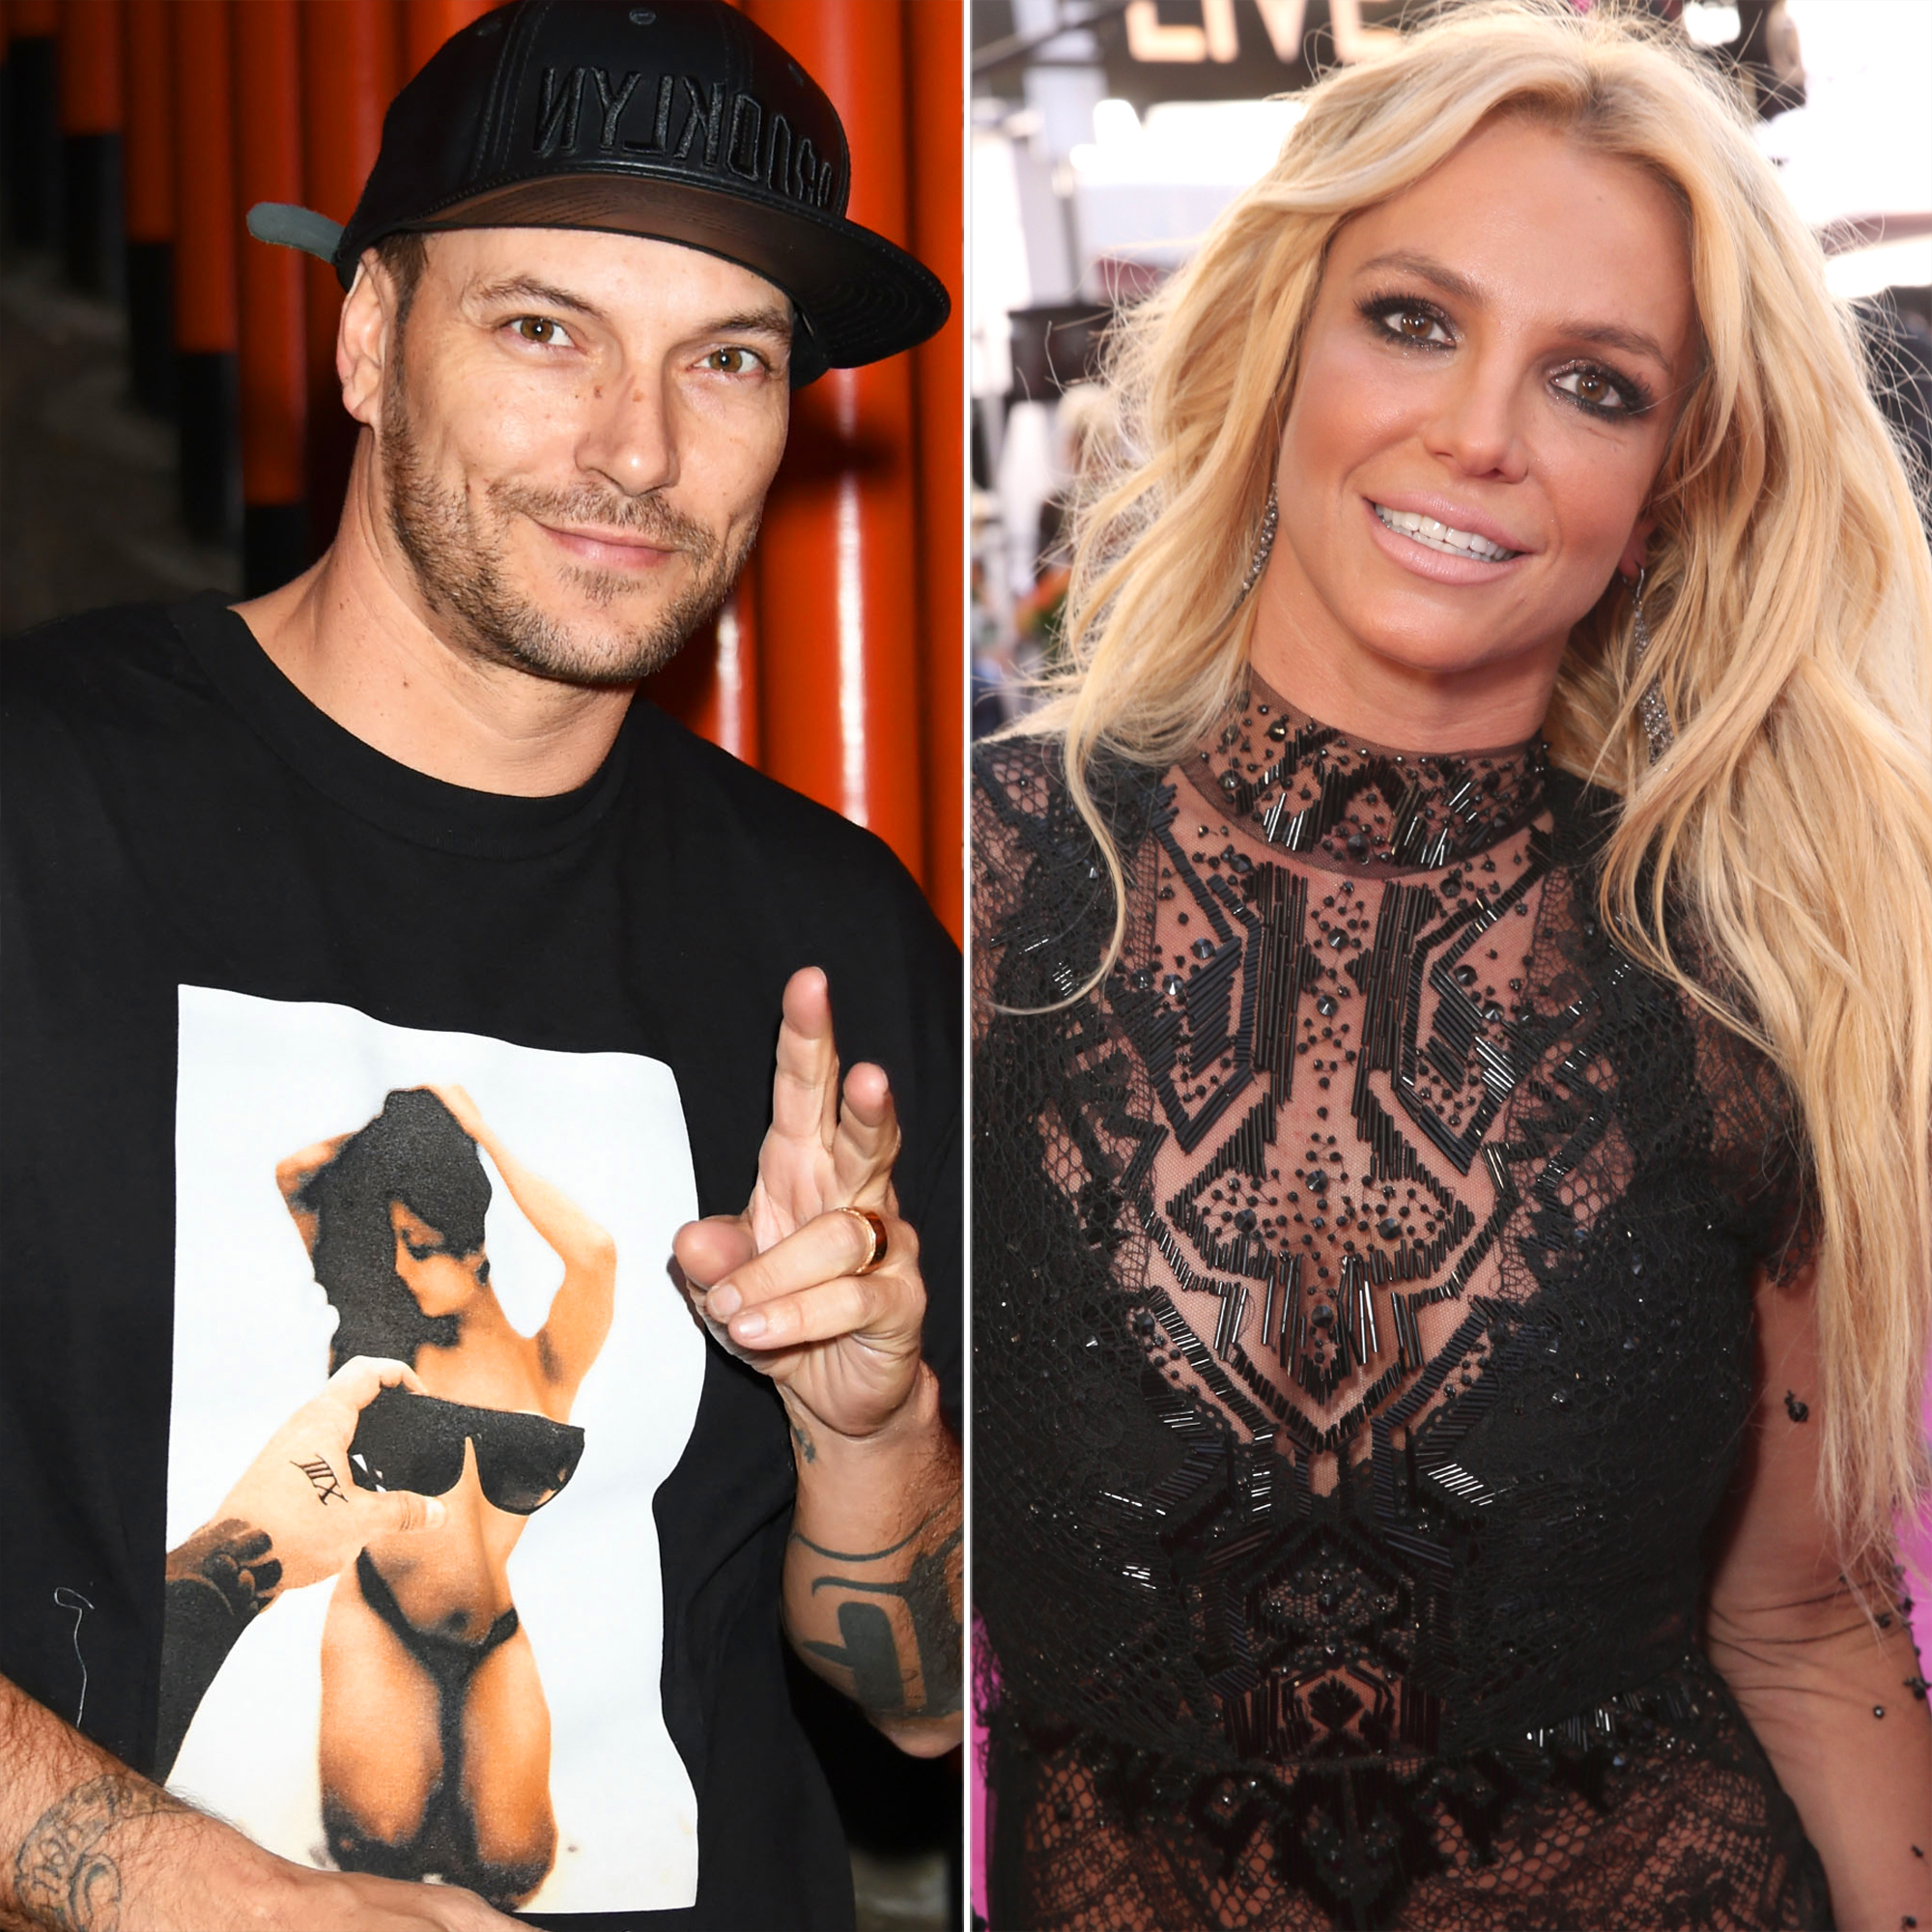 Kevin Federline Doesn't Want to Work for Britney Spears' Money